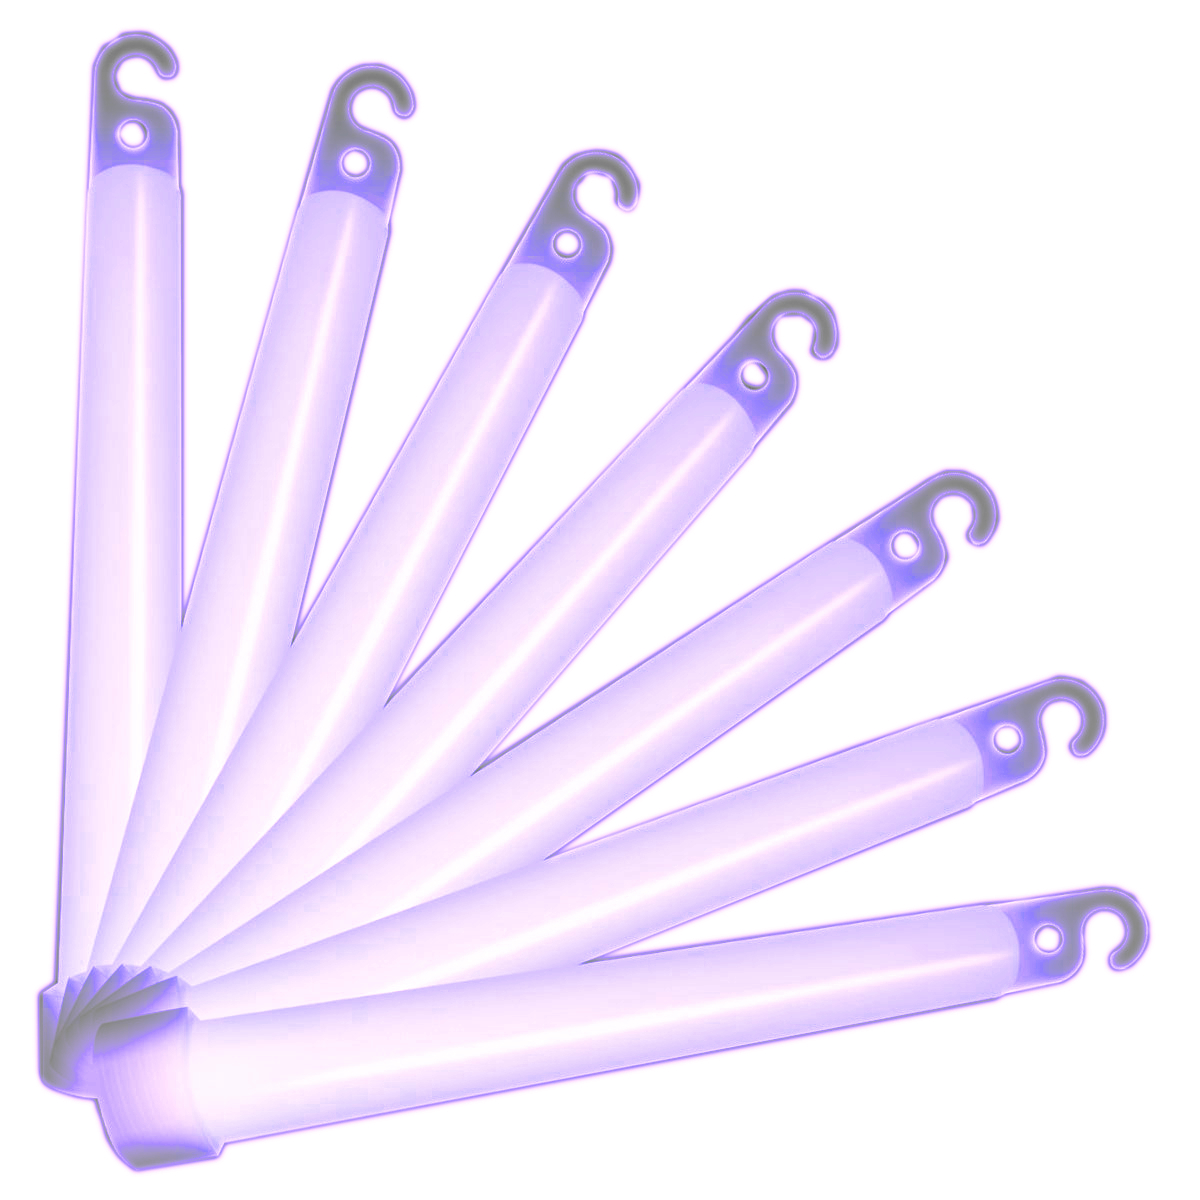 5 Minute High Intensity 6 Inch Glow Sticks Pack of 10 Purple All Products